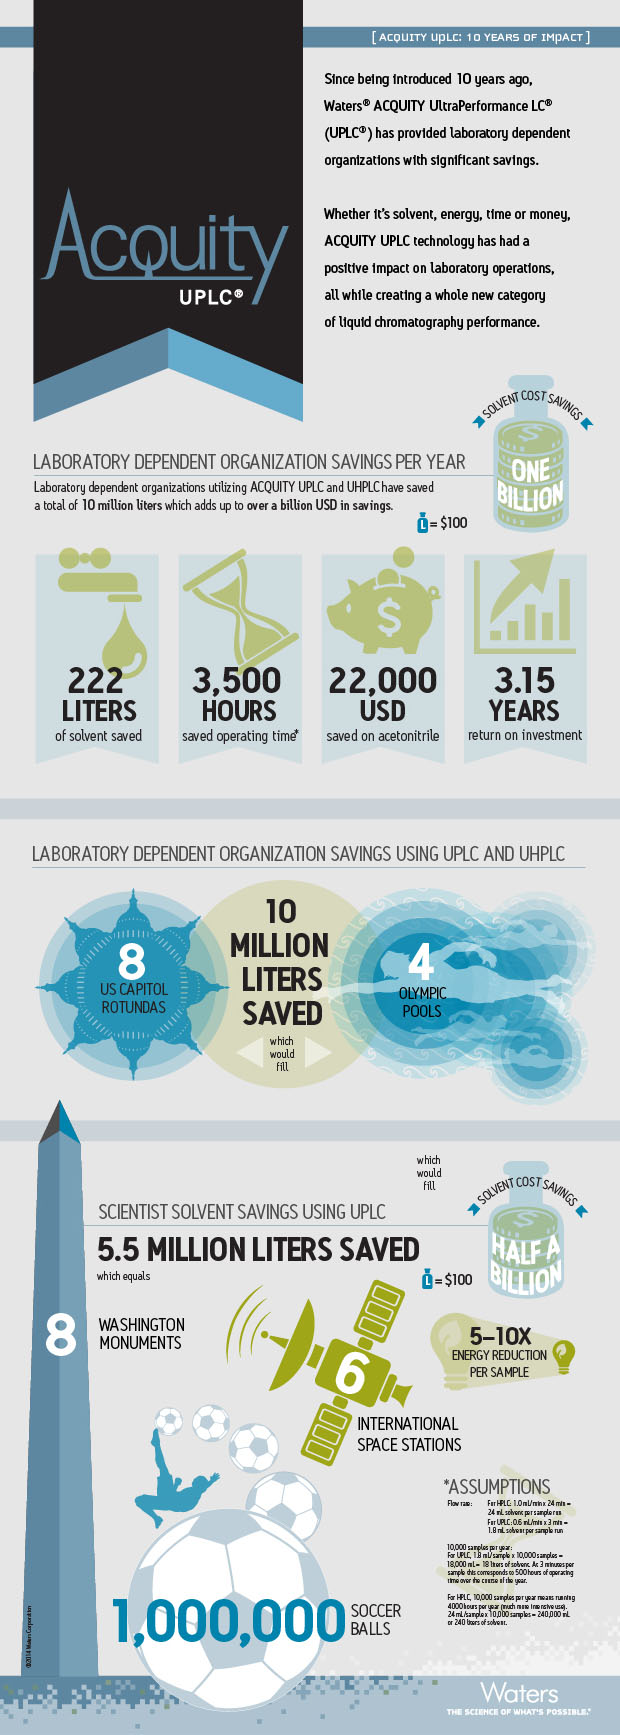 ACQUITY UPLC 10 Year Infographic